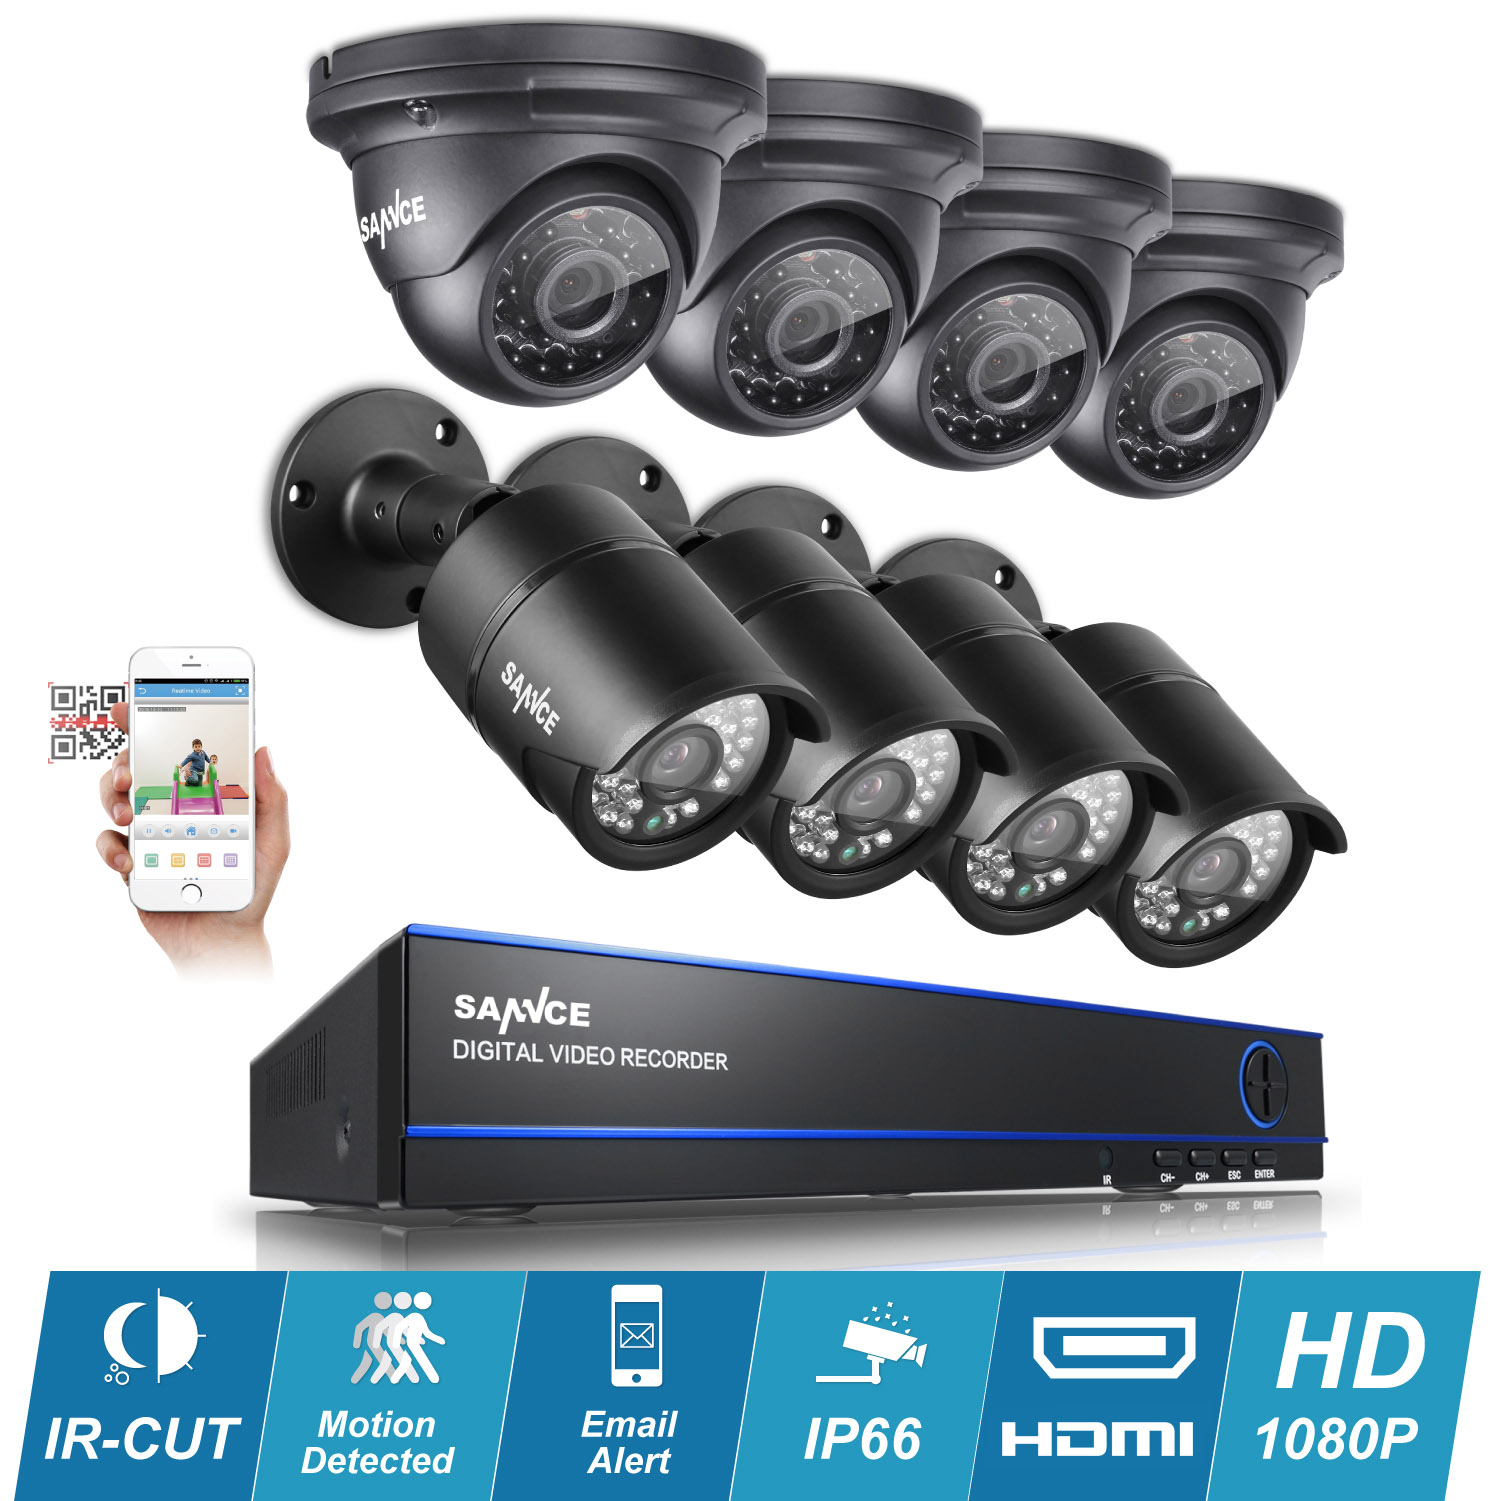 SANNCE 8 Channel 1080P AHD CCTV DVR Recorder with 8x 1920*1080p In/Outdoor Day Night IR-CUT Surveillance Video Security Camera System(Hard Drive Capacity is optional:0-NO HDD,1-1TB HDD,2-2TB HDD)